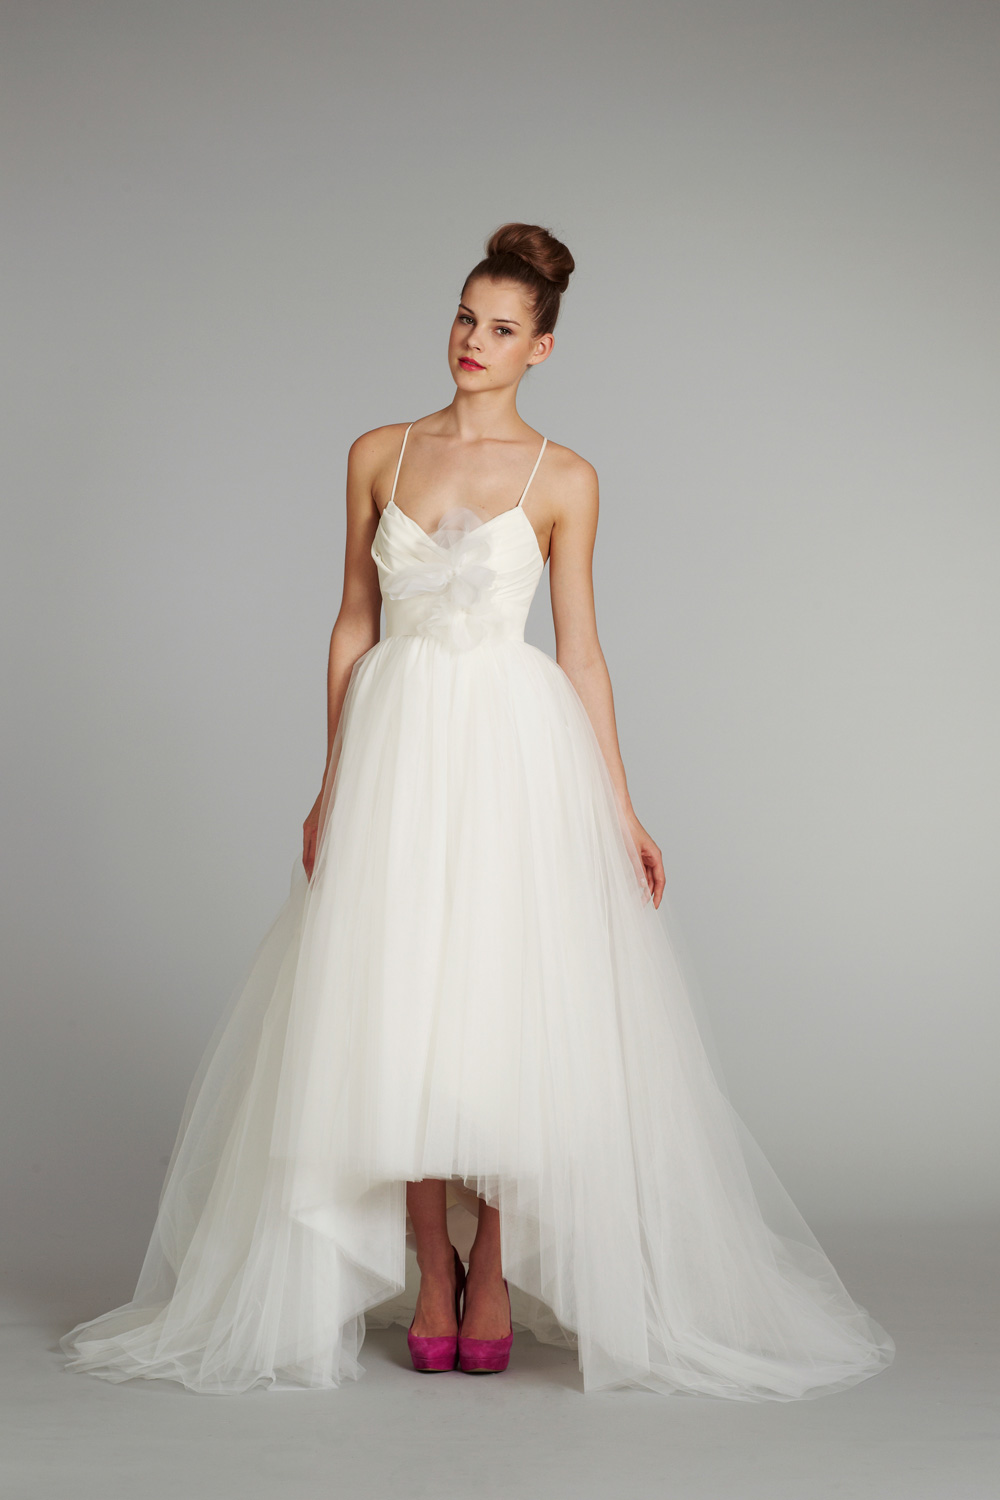 2012 wedding dresses bridal gown blush collection for jlm for White and lilac wedding dress